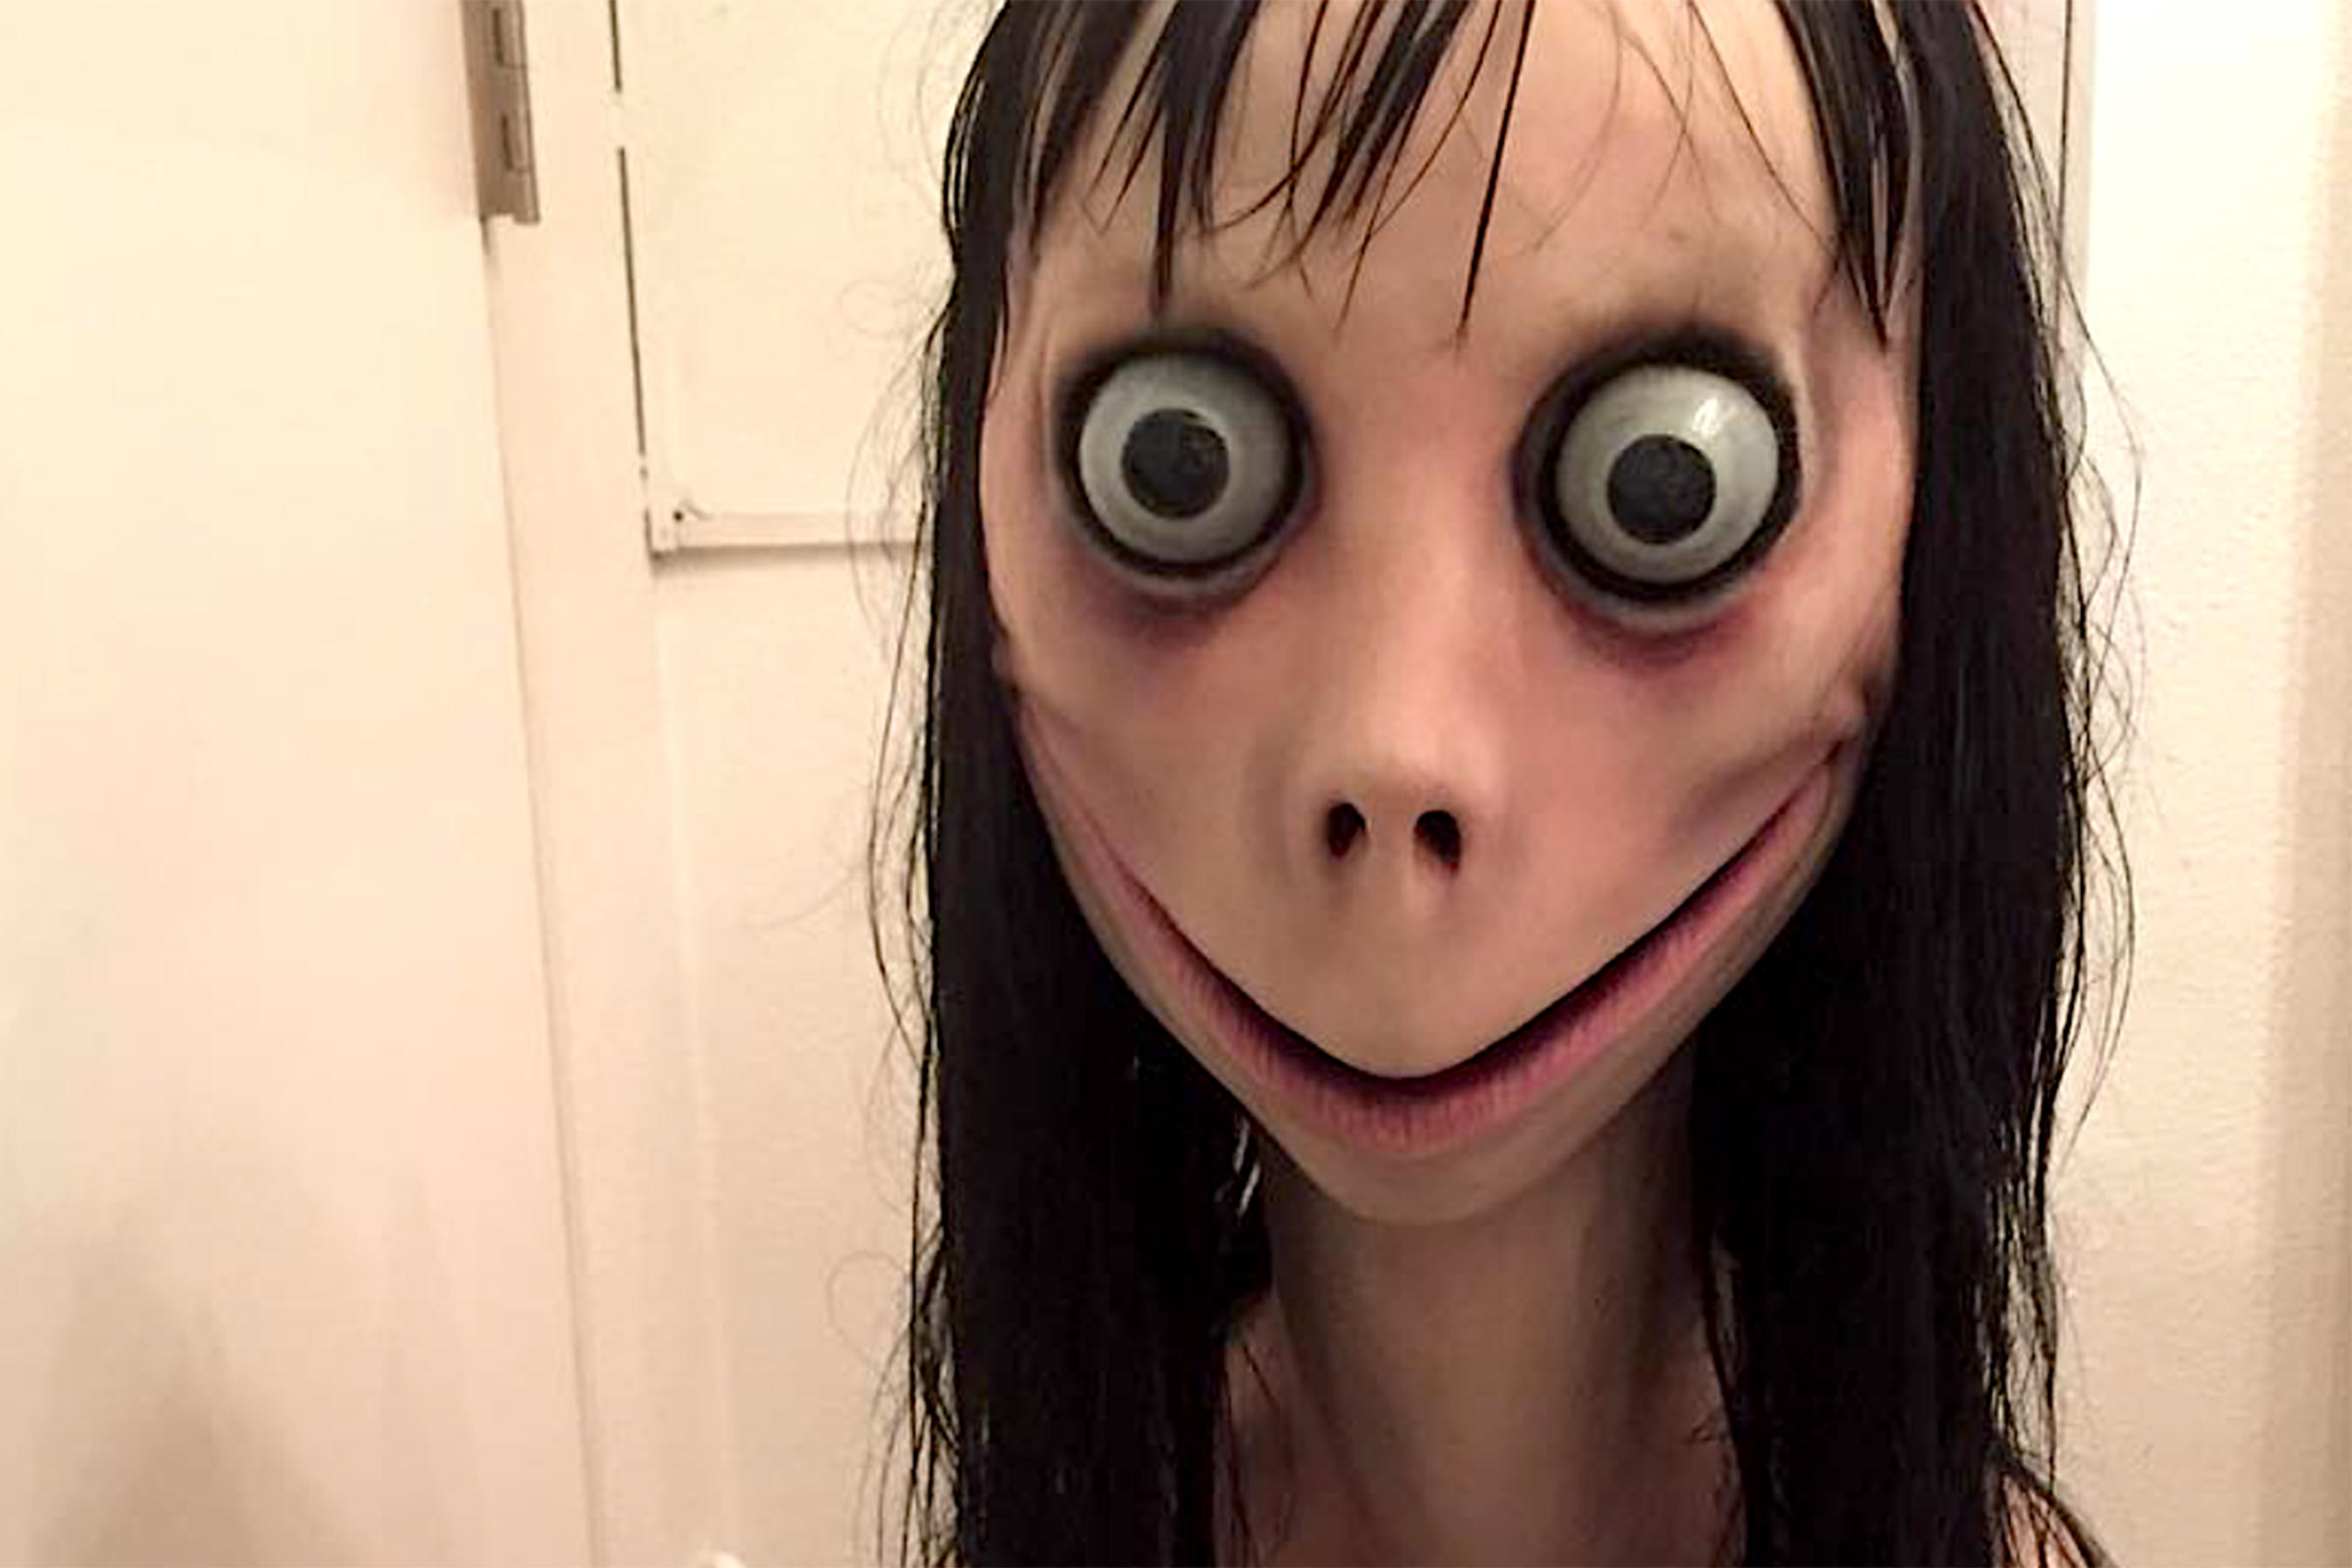 It producer developing horror film based on sculpture which inspired Momo Challenge hoax